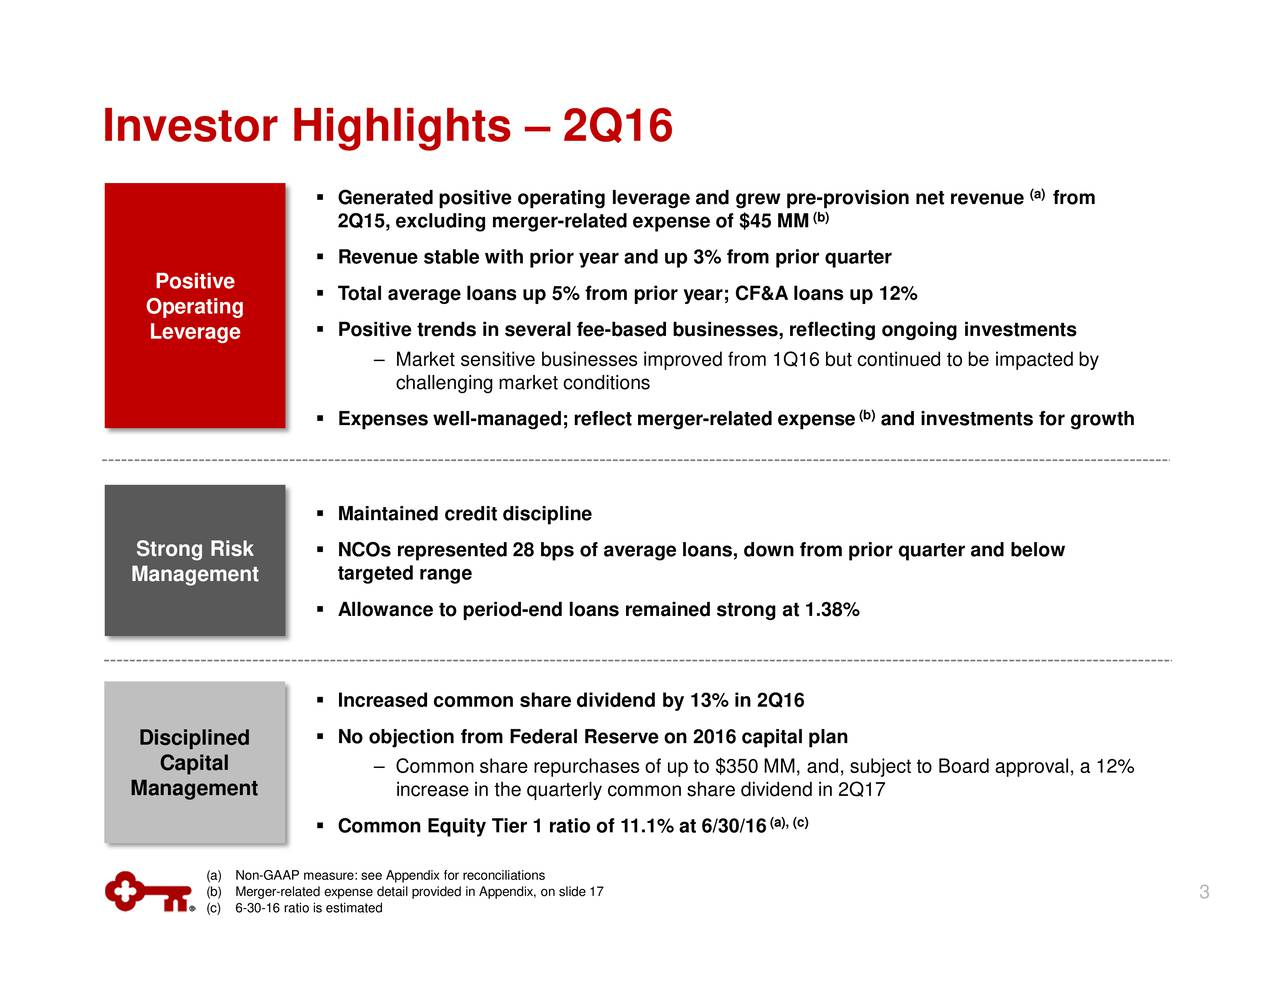 from (a) ed to be impacted by to Board approval, a 12% and investments for growth (b) prior quarter and below provision net revenue se (b) quarterflecting ongoing investments 38% lan (a), (c) ns ix, on slide 17 challenging market conditions increase in the quarterly common share dividend in 2Q17 Market sensitive businesses improved from 1Q16 but continuepurchases of up to $350 MM, and, subject Ge2Q1R5,evTolalinaeiagertn-nslnpd5earfnlfep-iarefrbm;CiroArsls, reted expenooEnqu,towTerforatio of 11.1% at 6/30/16 (a)(cnG-A-m6edus:nieppeaixoirdreedco PositLeverage Capital Operating StrManagement DiscipManagement Investor Highlights  2Q16